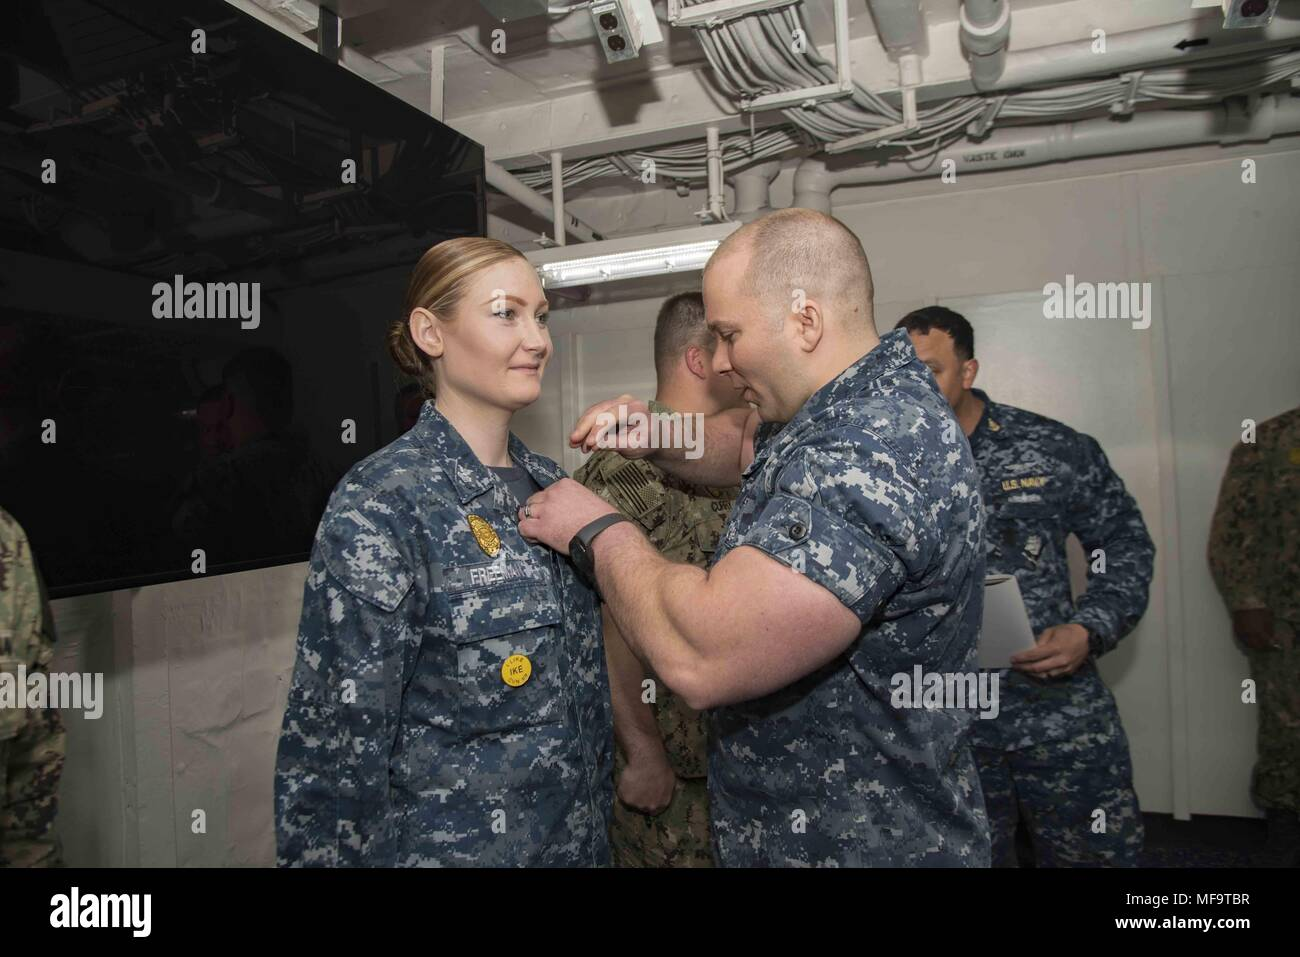 180423-N-LA456-0013 PORTSMOUTH, Va. (April 23, 2018) Master-At-Arms 1st Class Nancy Freeman receives her enlisted surface warfare specialist pin in the Five-Star classroom of the aircraft carrier USS Dwight D. Eisenhower (CVN 69) (Ike), April 23, 2018. Ike is undergoing a Planned Incremental Availability (PIA) at Norfolk Naval Shipyard during the maintenance phase of the Optimized Fleet Response Plan (OFRP). (U.S. Navy photo by Mass Communication Specialist Seaman Ashley M.C. Estrella). () - Stock Image